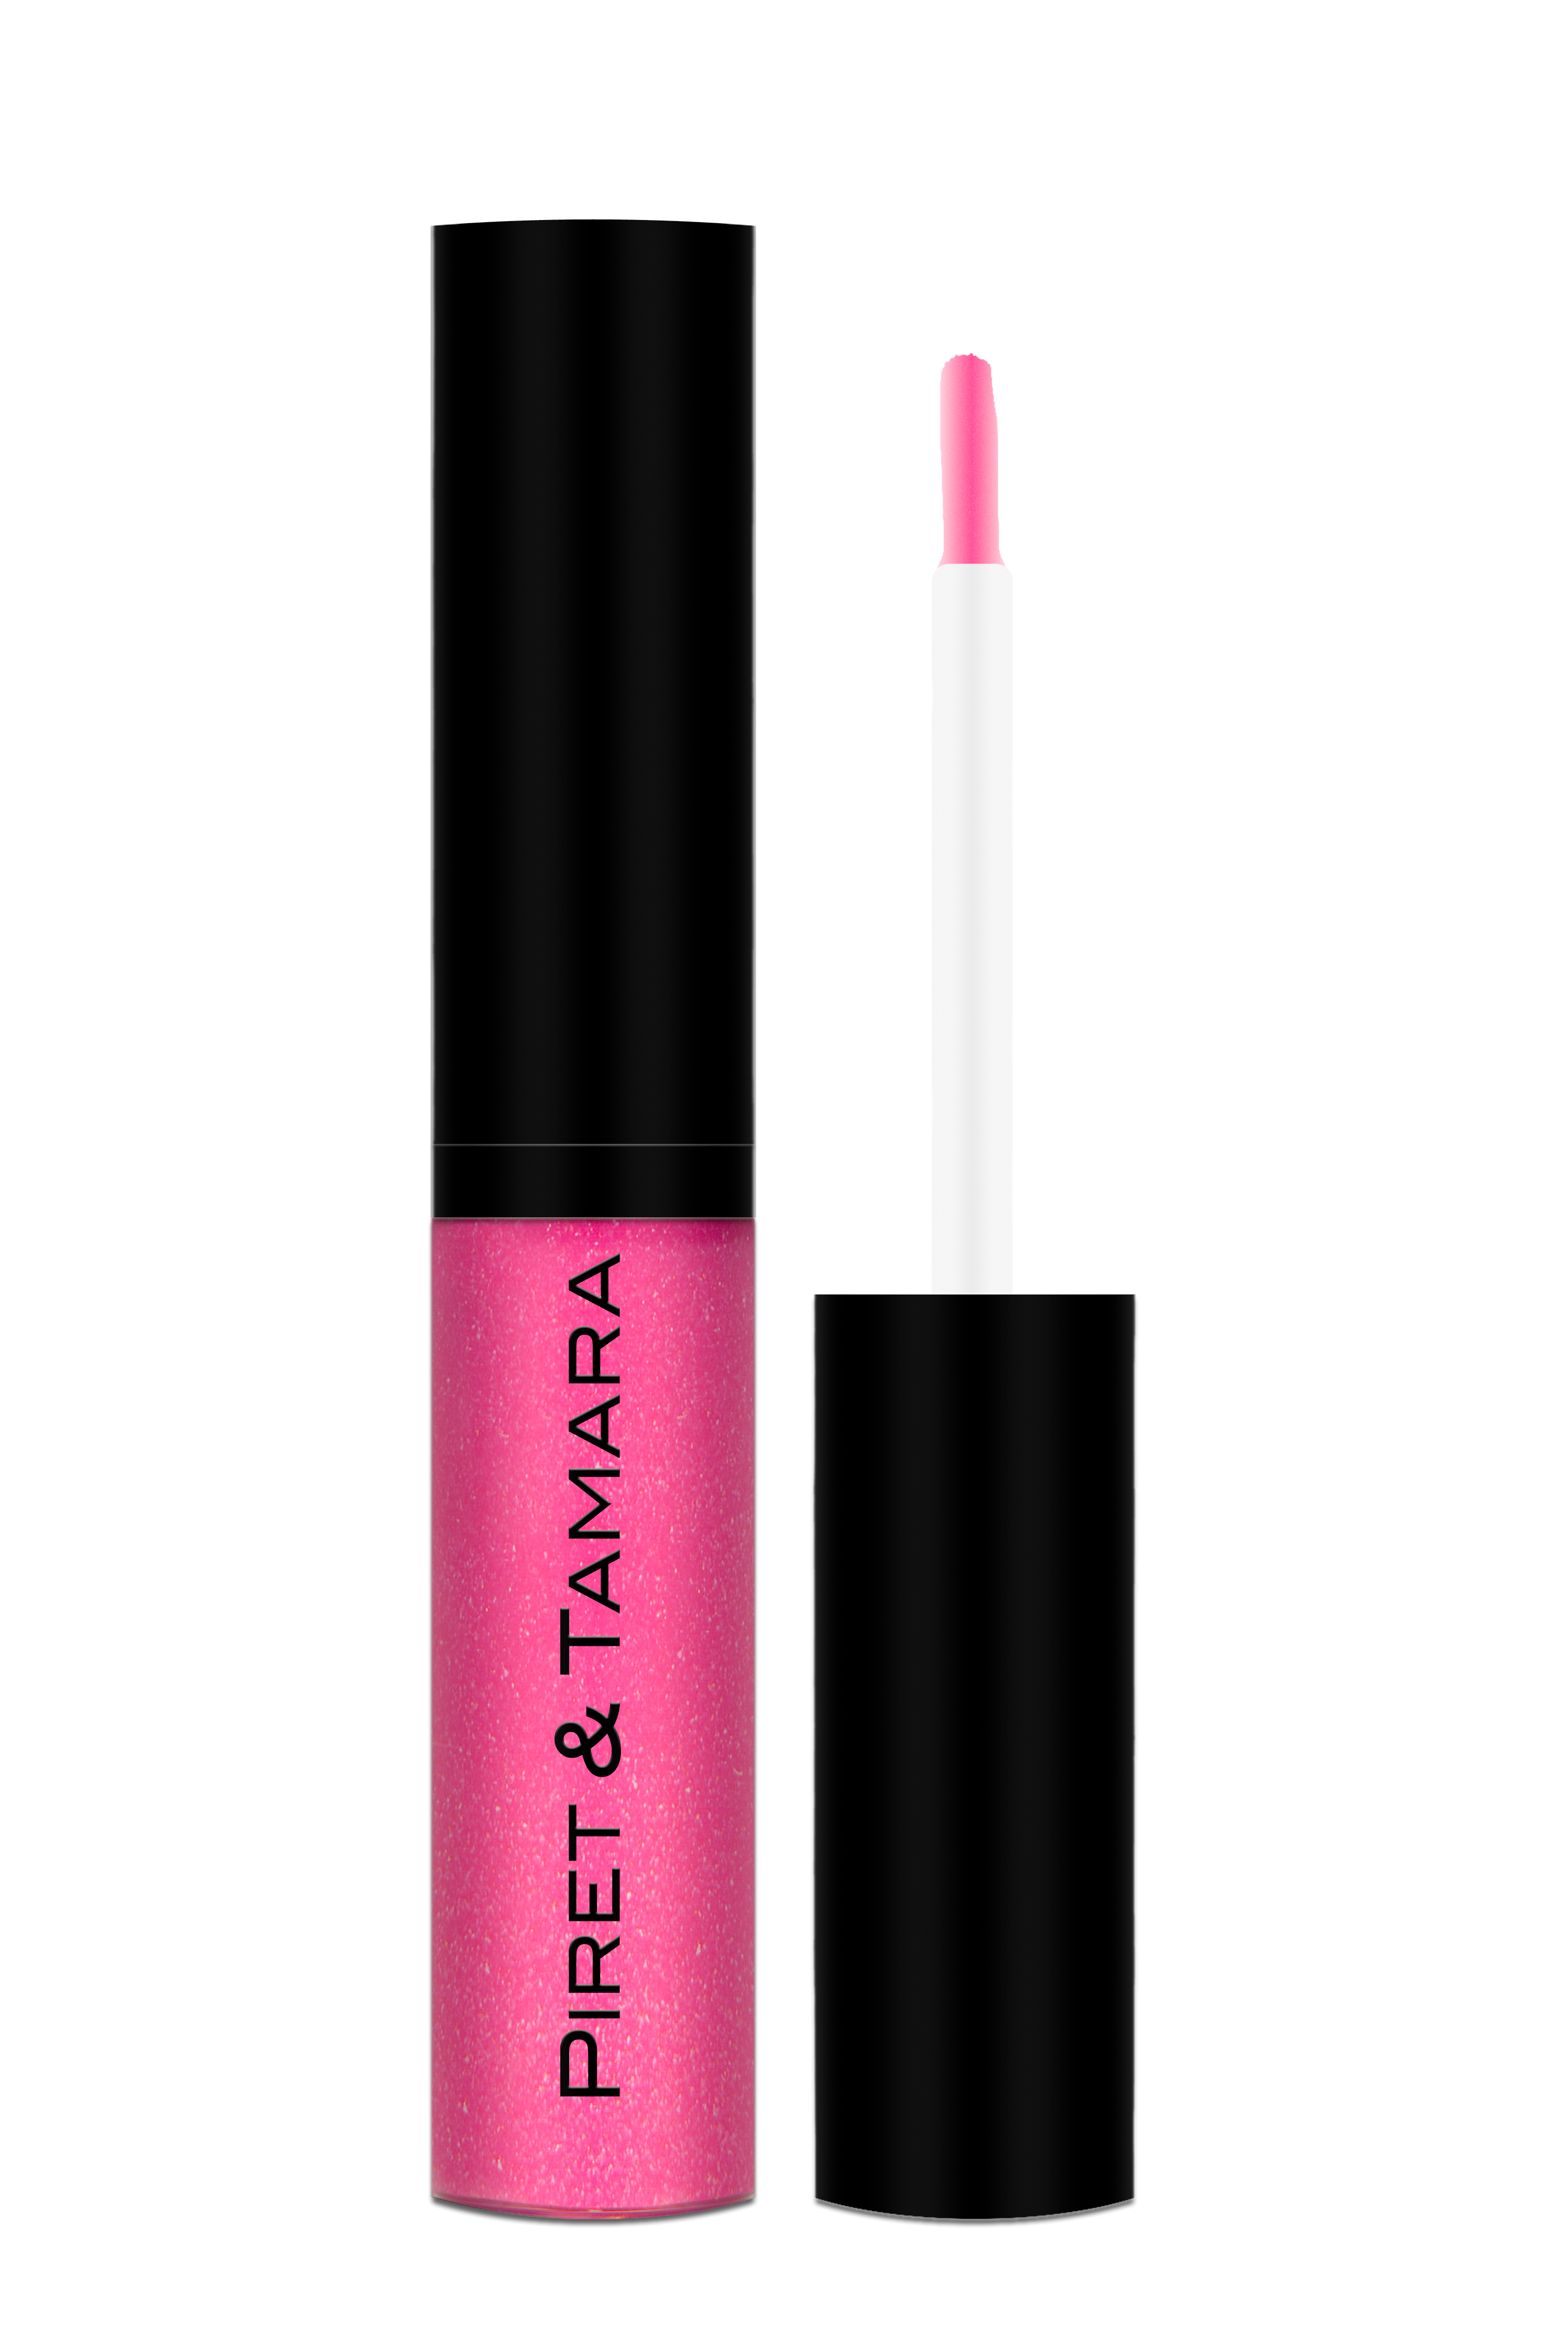 Piret & Tamara pink lip gloss is perfect for the soft, natural honeymoon look